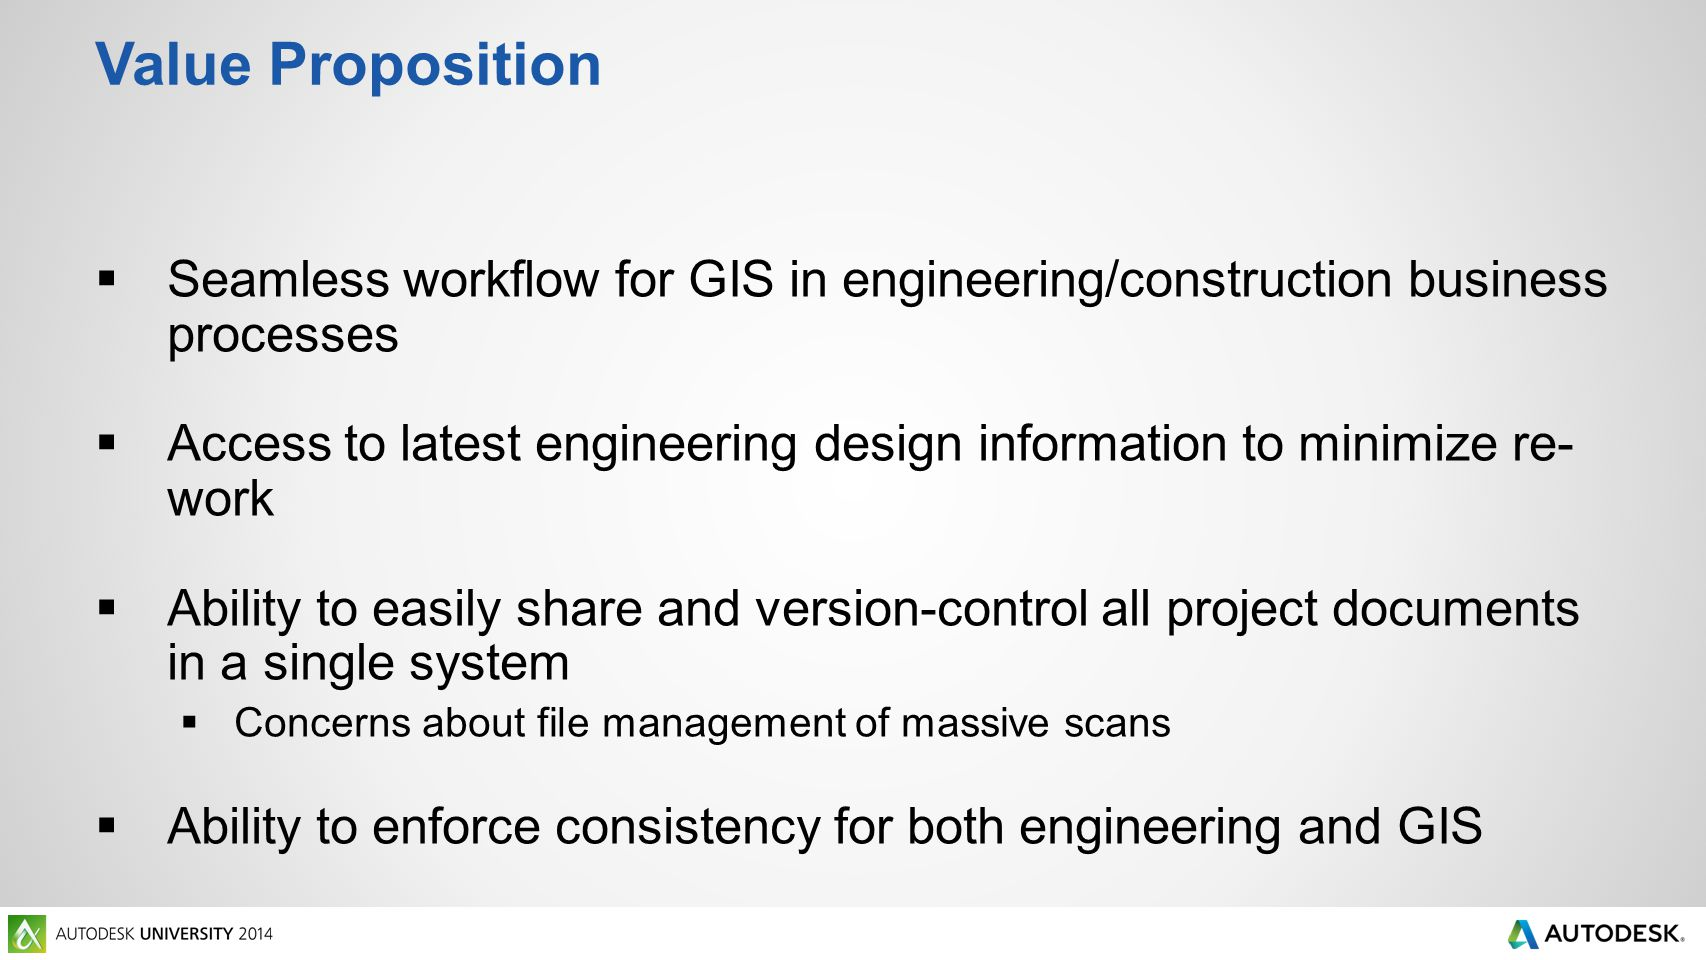 Value Proposition  Seamless workflow for GIS in engineering/construction business processes  Access to latest engineering design information to minimize re- work  Ability to easily share and version-control all project documents in a single system  Concerns about file management of massive scans  Ability to enforce consistency for both engineering and GIS